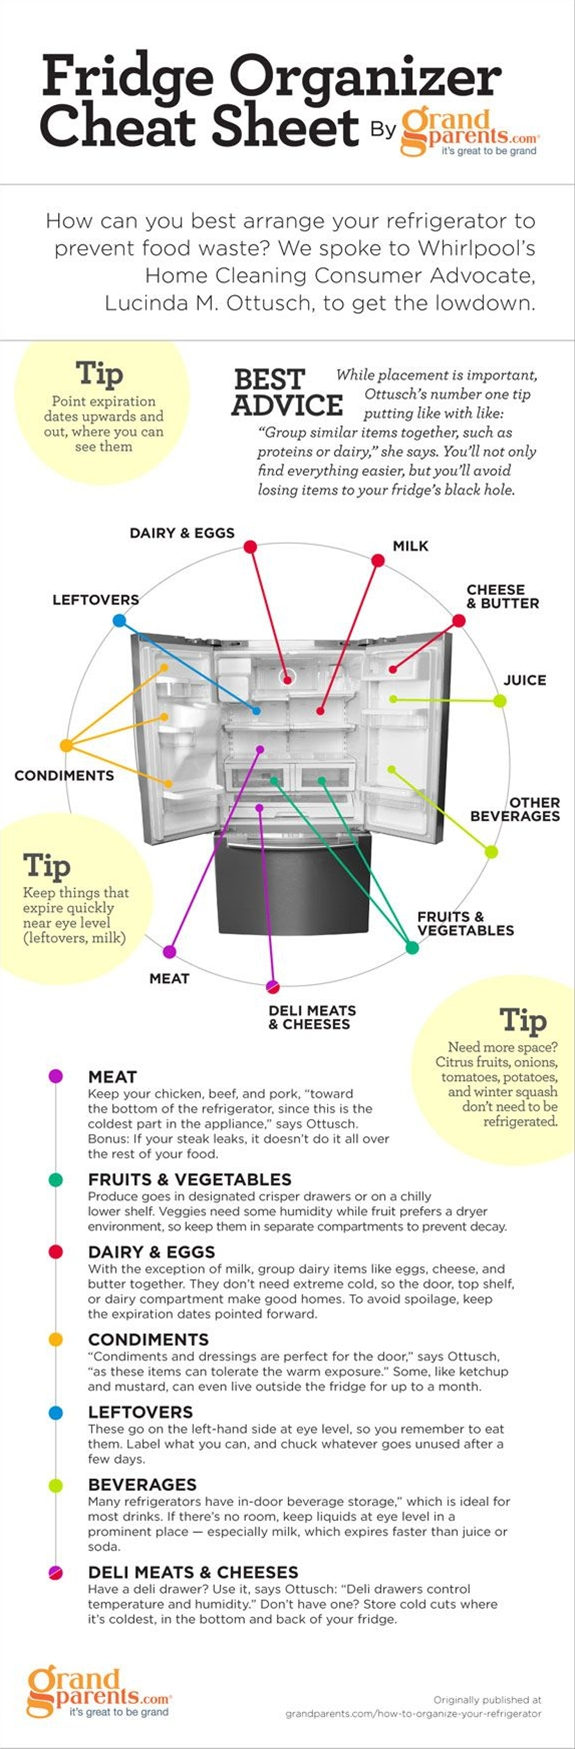 Stop food waste and save thousands by optimizing the fridge for maximum efficiency.